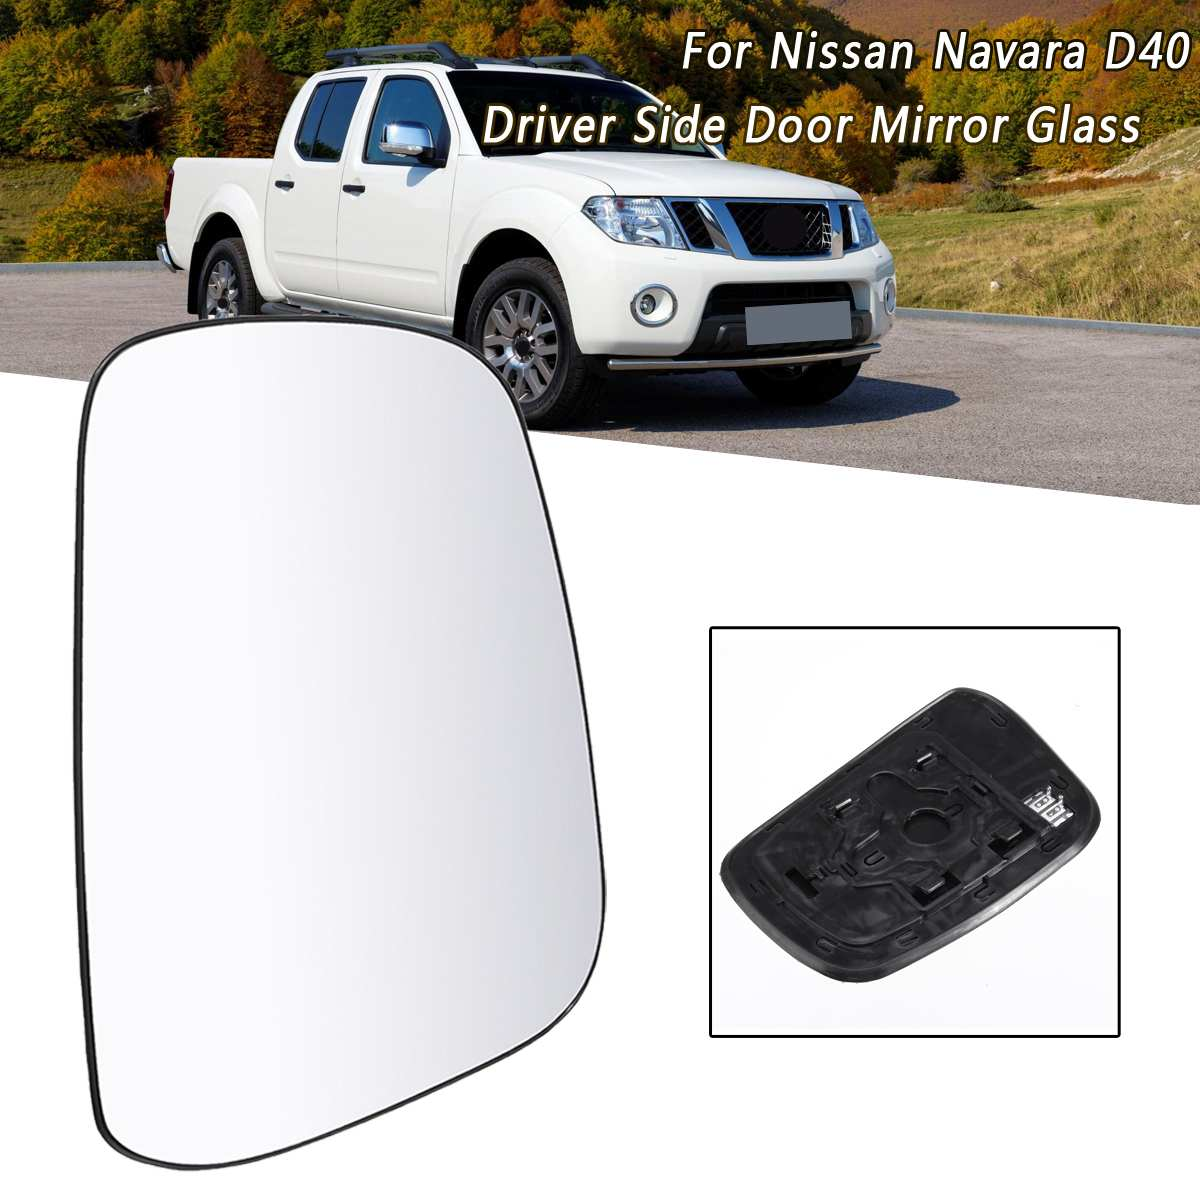 New Replacement Mirror Glass with FULL SIZE ADHESIVE for Volvo V70 XC70 XC90 Passenger Side View Right RH